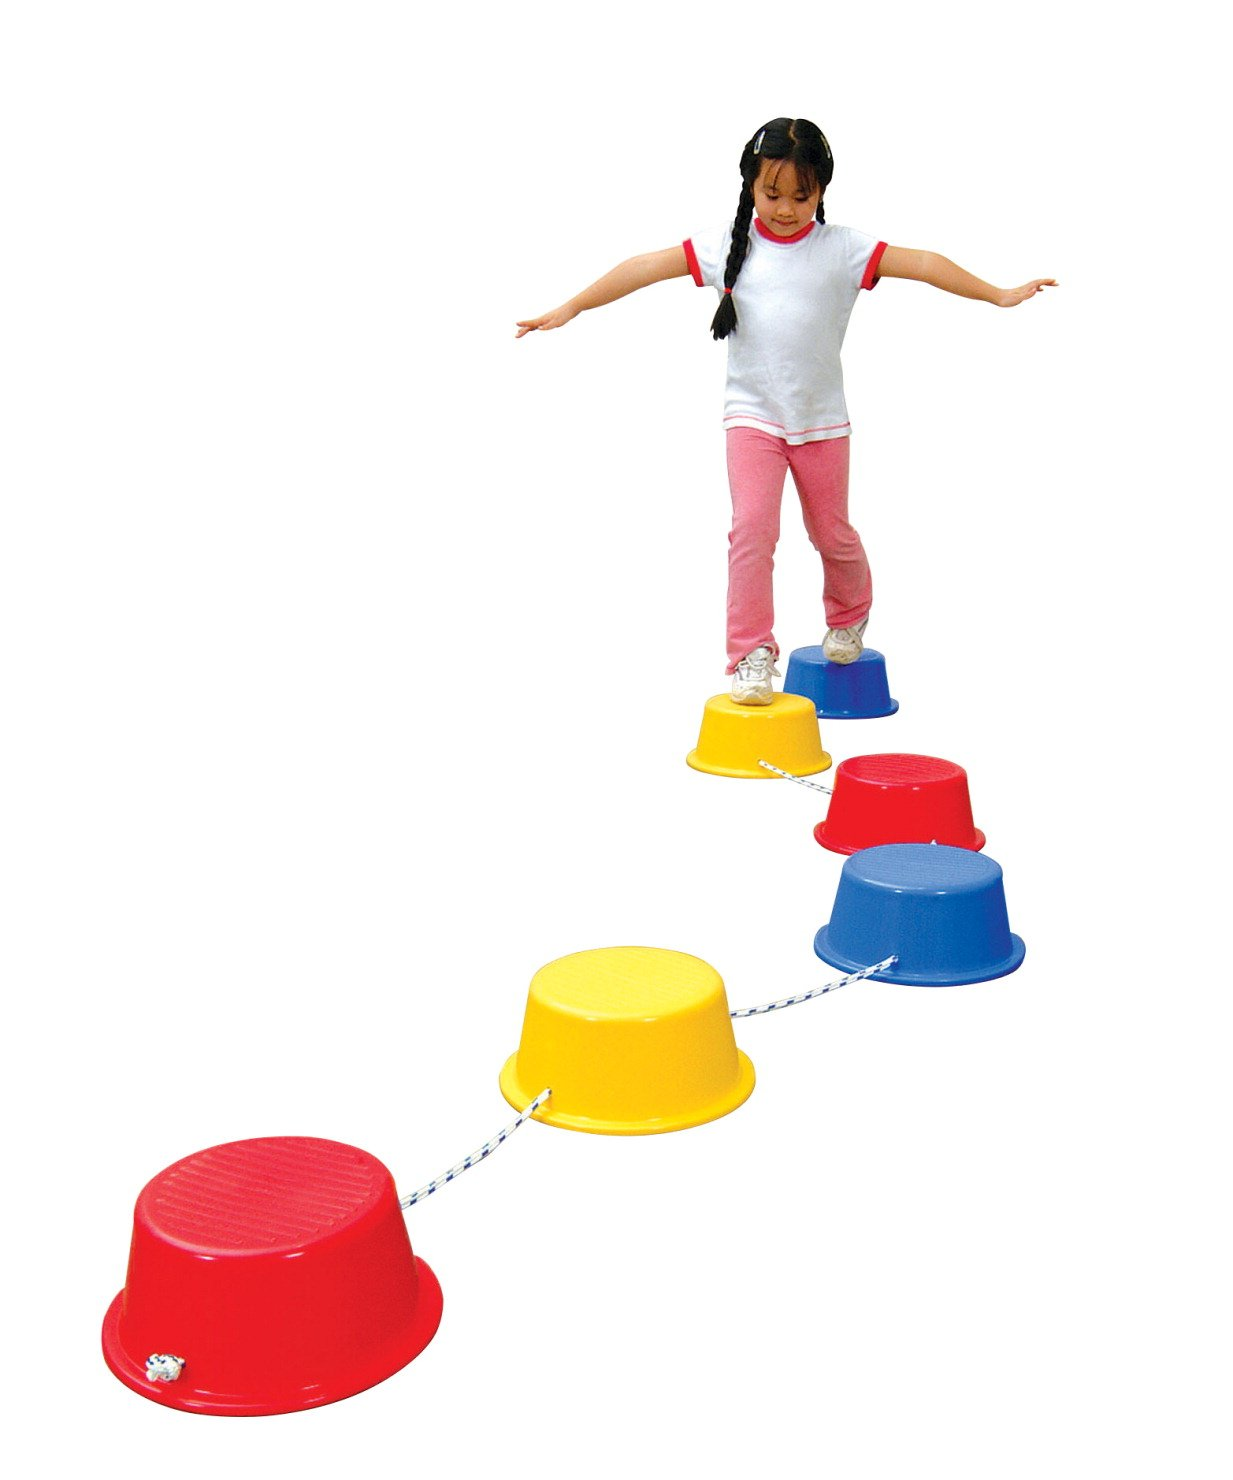 School Smart Stepping Buckets Balance Builders - 5 x 12 inch - Set of 6 - 2 Each of 3 Primary Colors - 018901 by School Smart